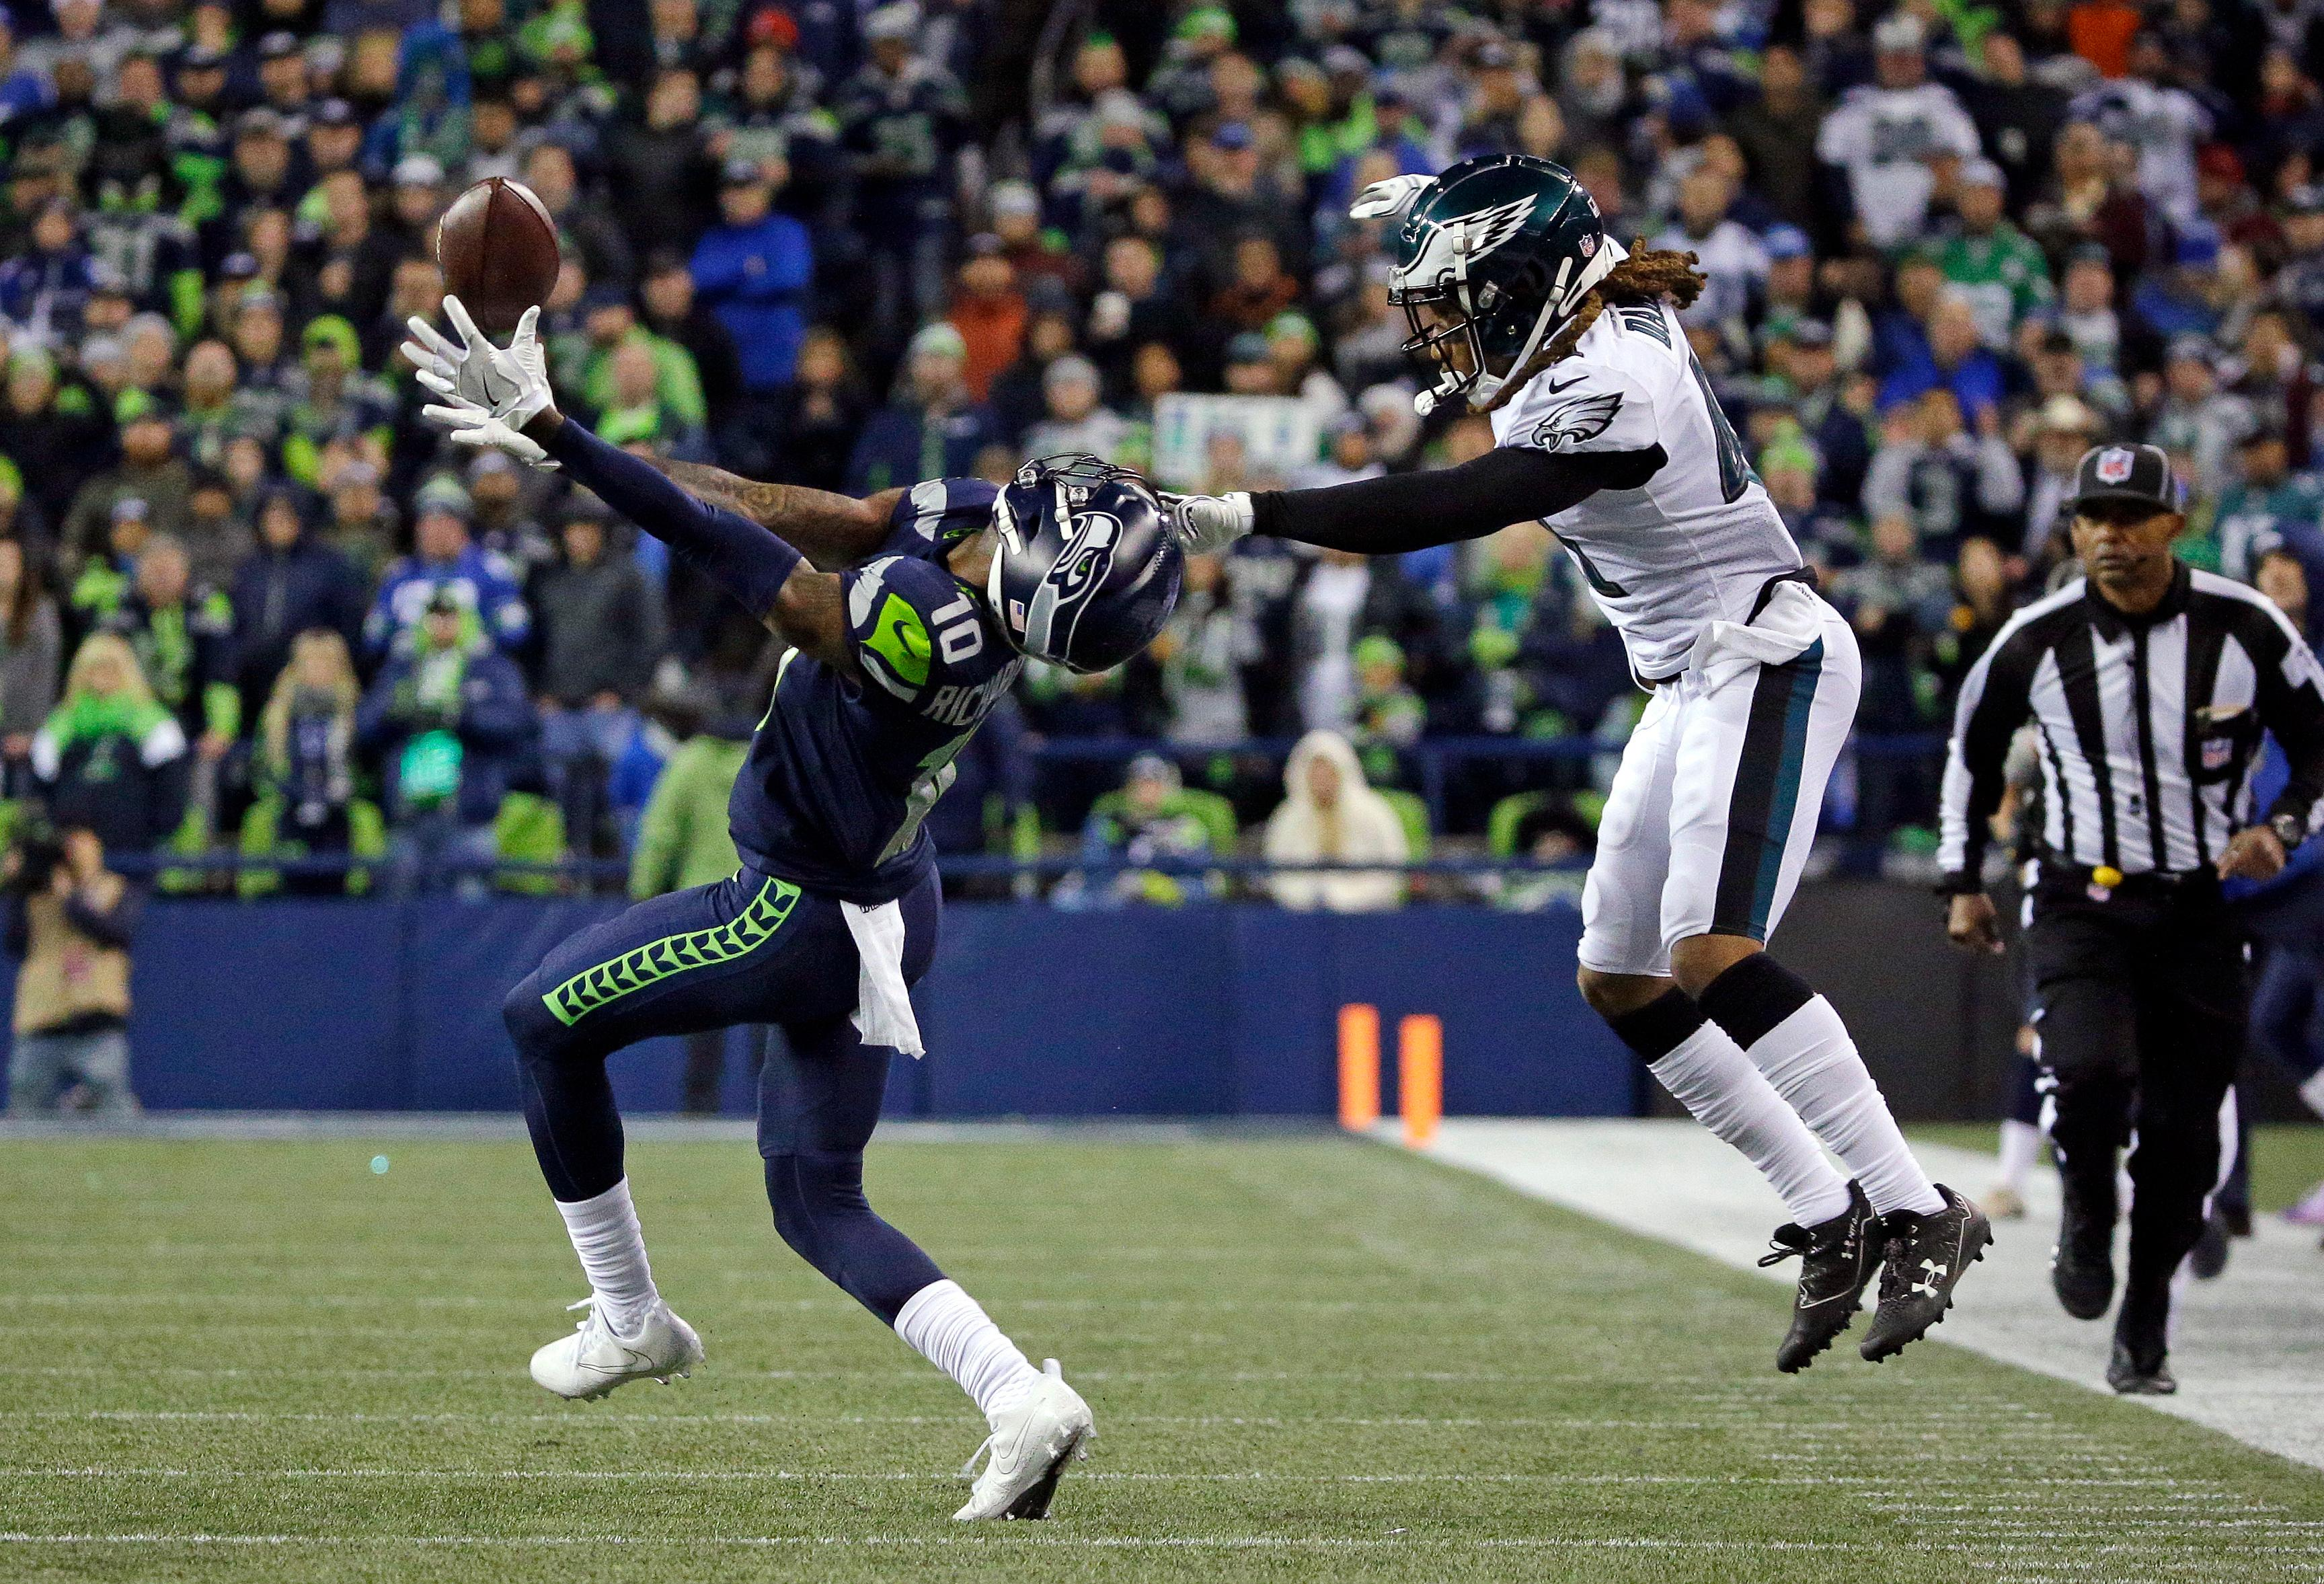 Seattle Seahawks' Paul Richardson, left, has his helmet pulled back as Philadelphia Eagles' Ronald Darby makes contact on a pass attempt to Richardson during the second half of an NFL football game, Sunday, Dec. 3, 2017, in Seattle. (AP Photo/Ted S. Warren)